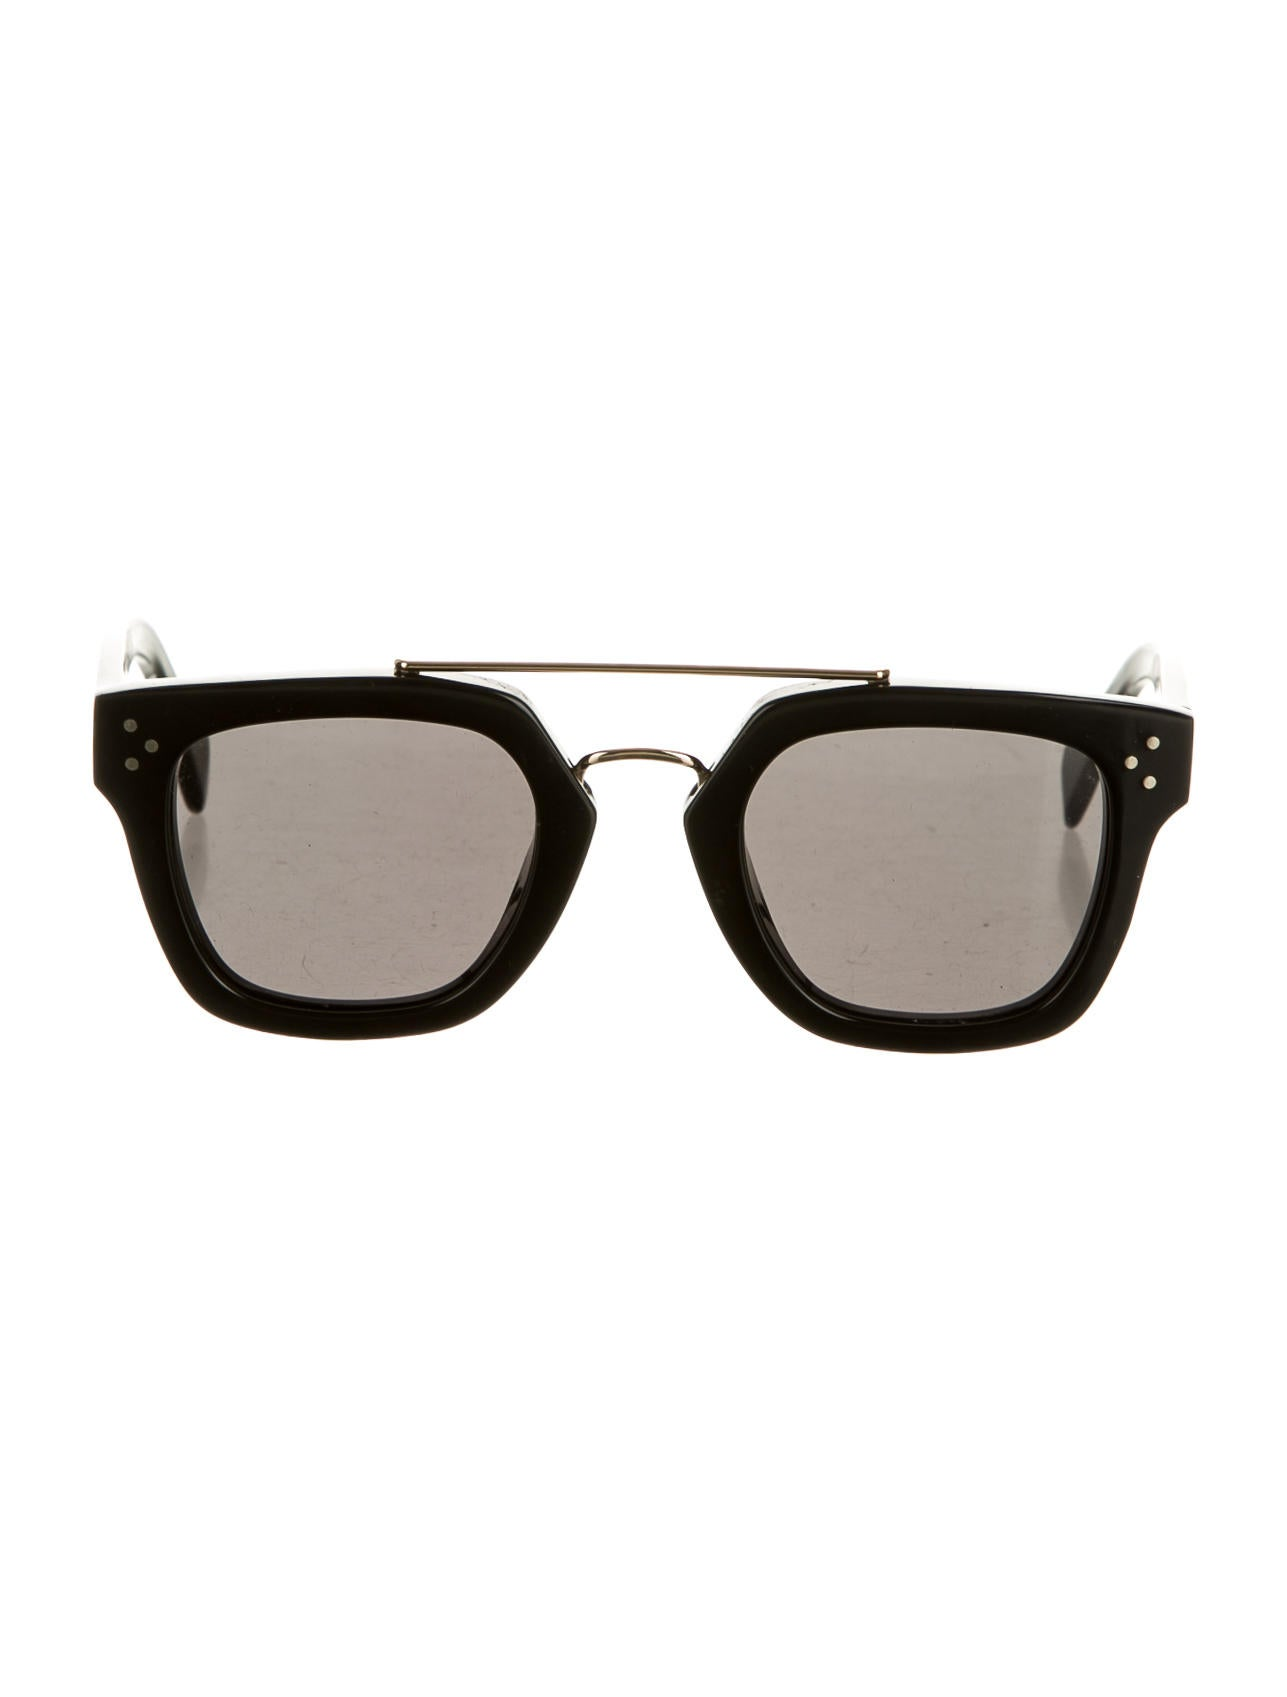 Celine Gold Frame Sunglasses : Celine Sunglasses - Accessories - CEL24965 The RealReal